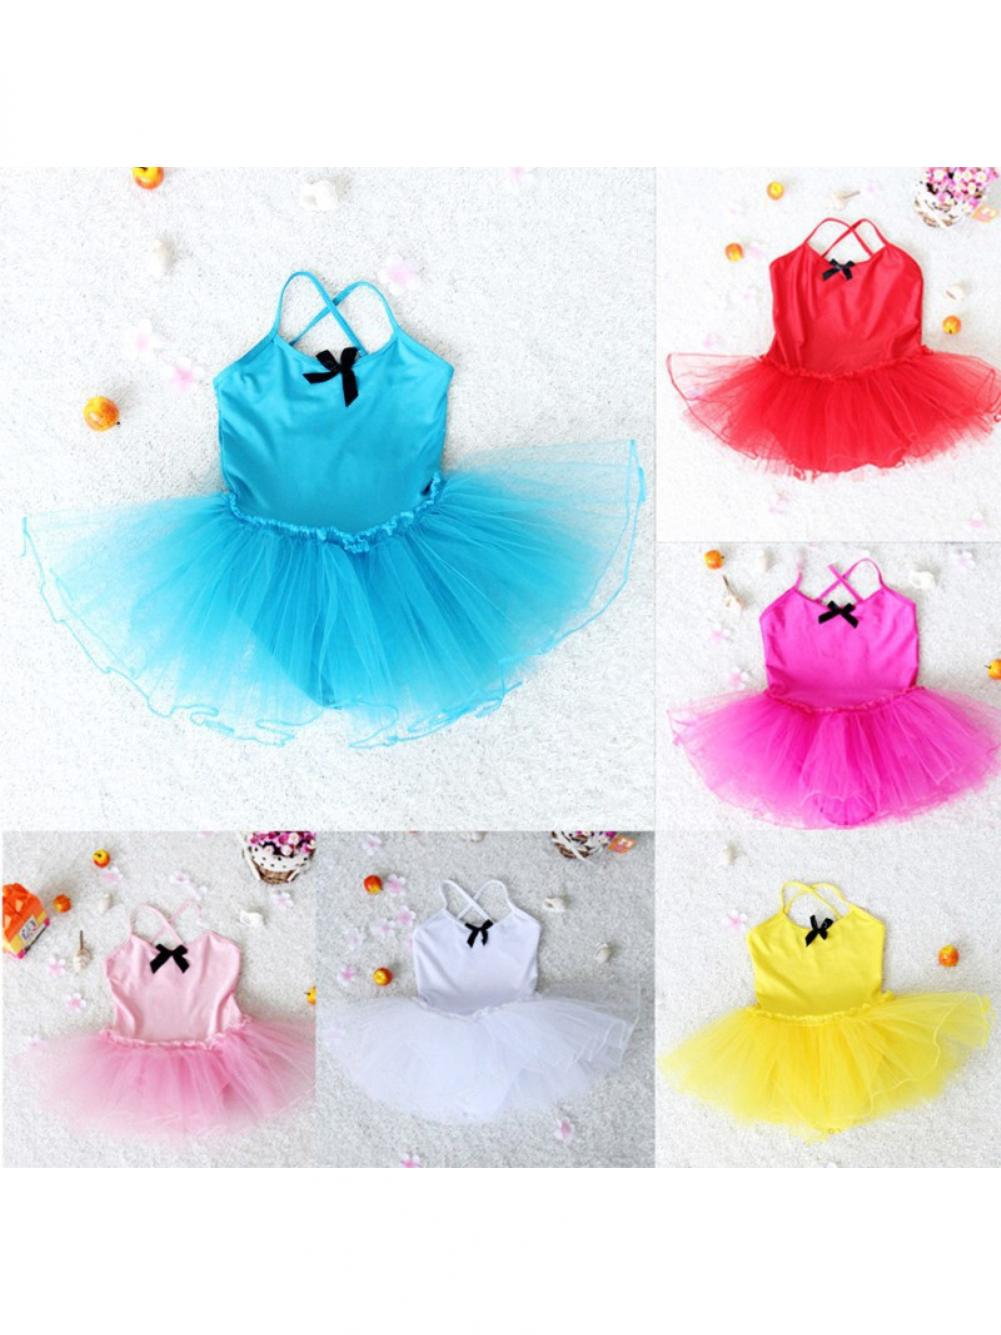 Cute Toddler Baby Girls Bowknot Ballet Tutu Sling Dress Dancing Costume Leotard